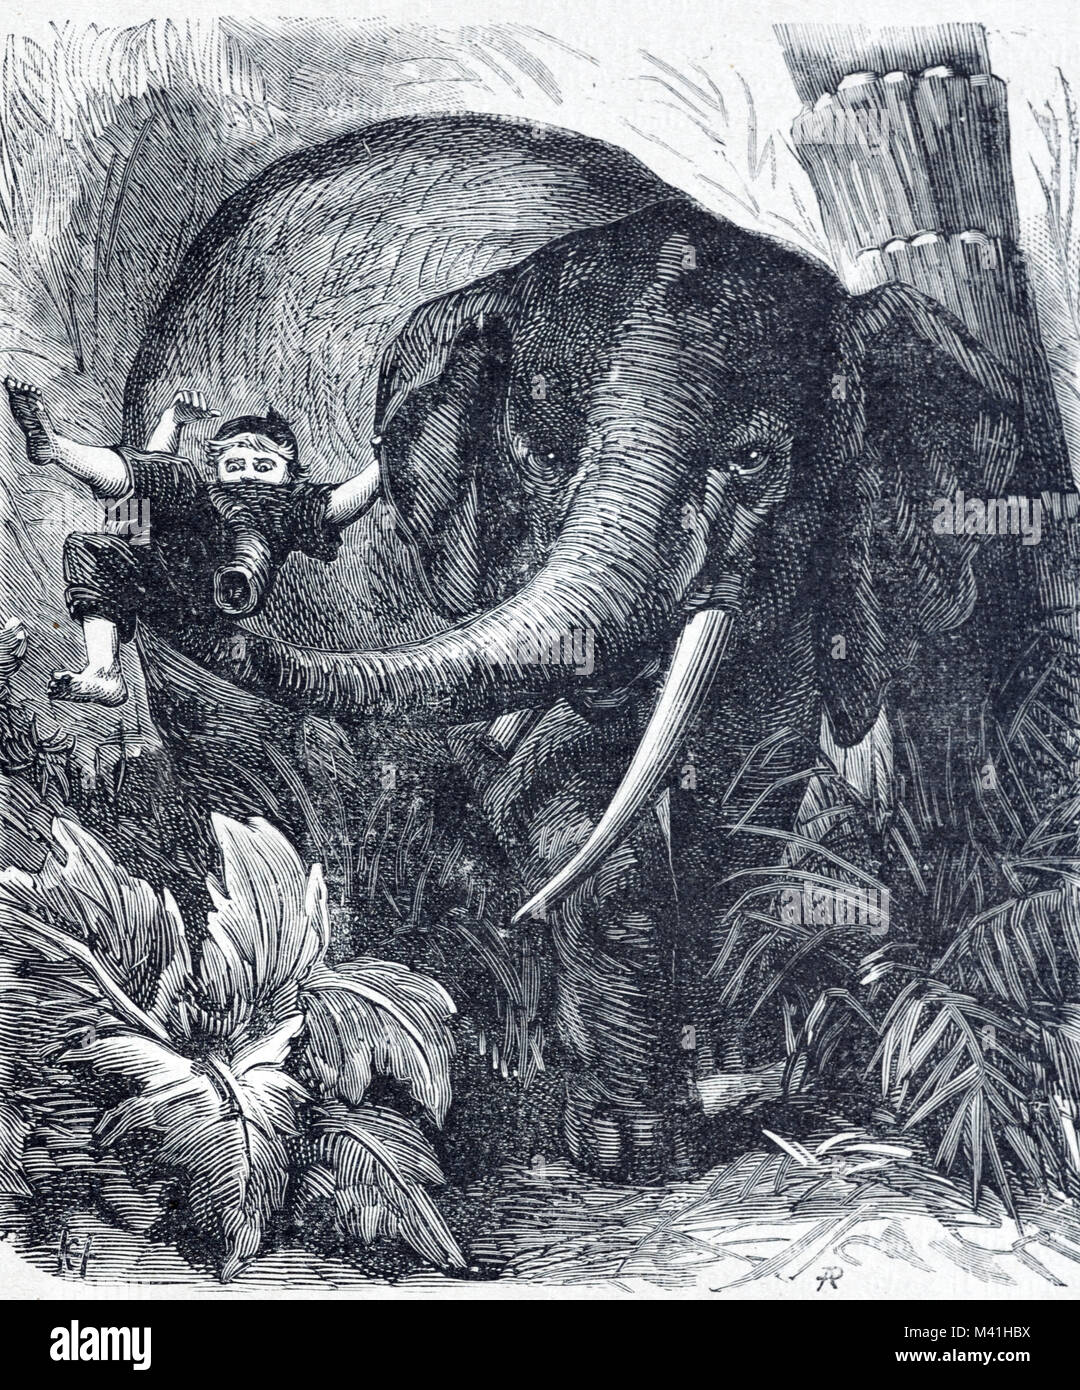 African Forest Elephant, Loxodonta cyclotis, Attacking Child